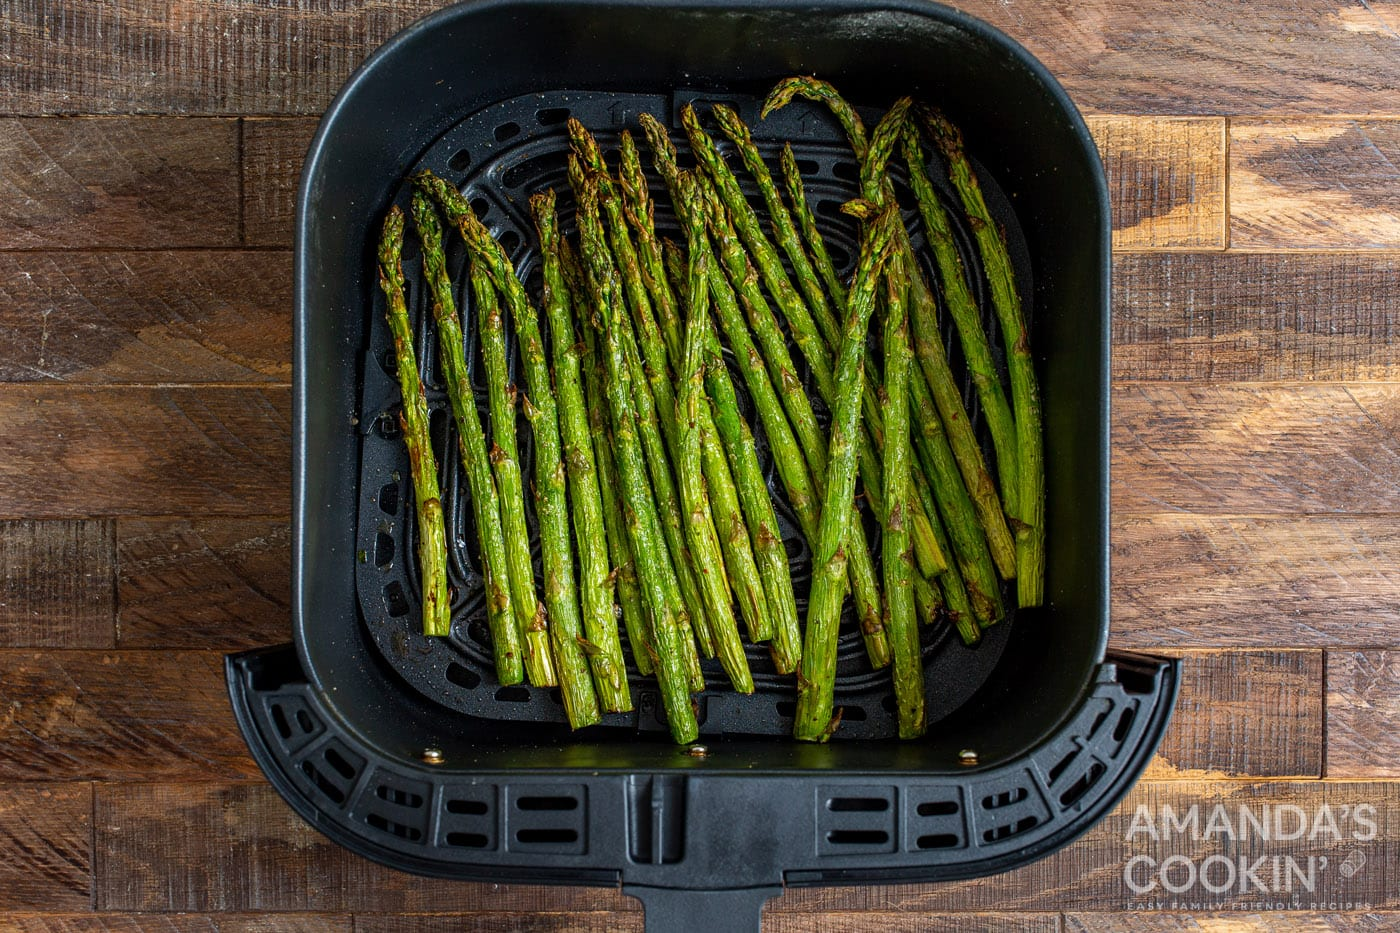 cooked asparagus in the air fryer